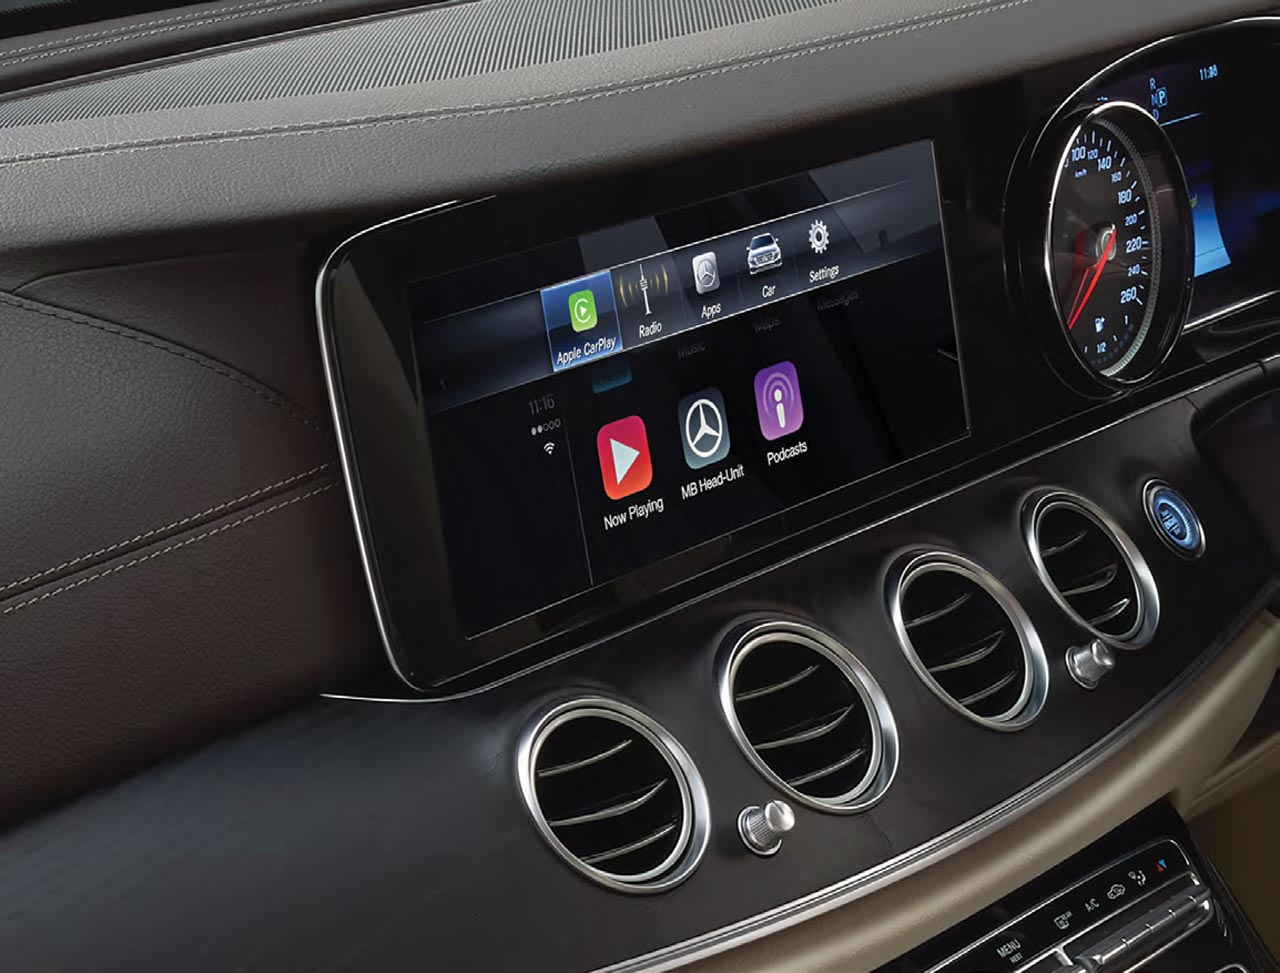 2017 mercedes benz e class lwb india apple carplay autobics for Mercedes benz apple carplay